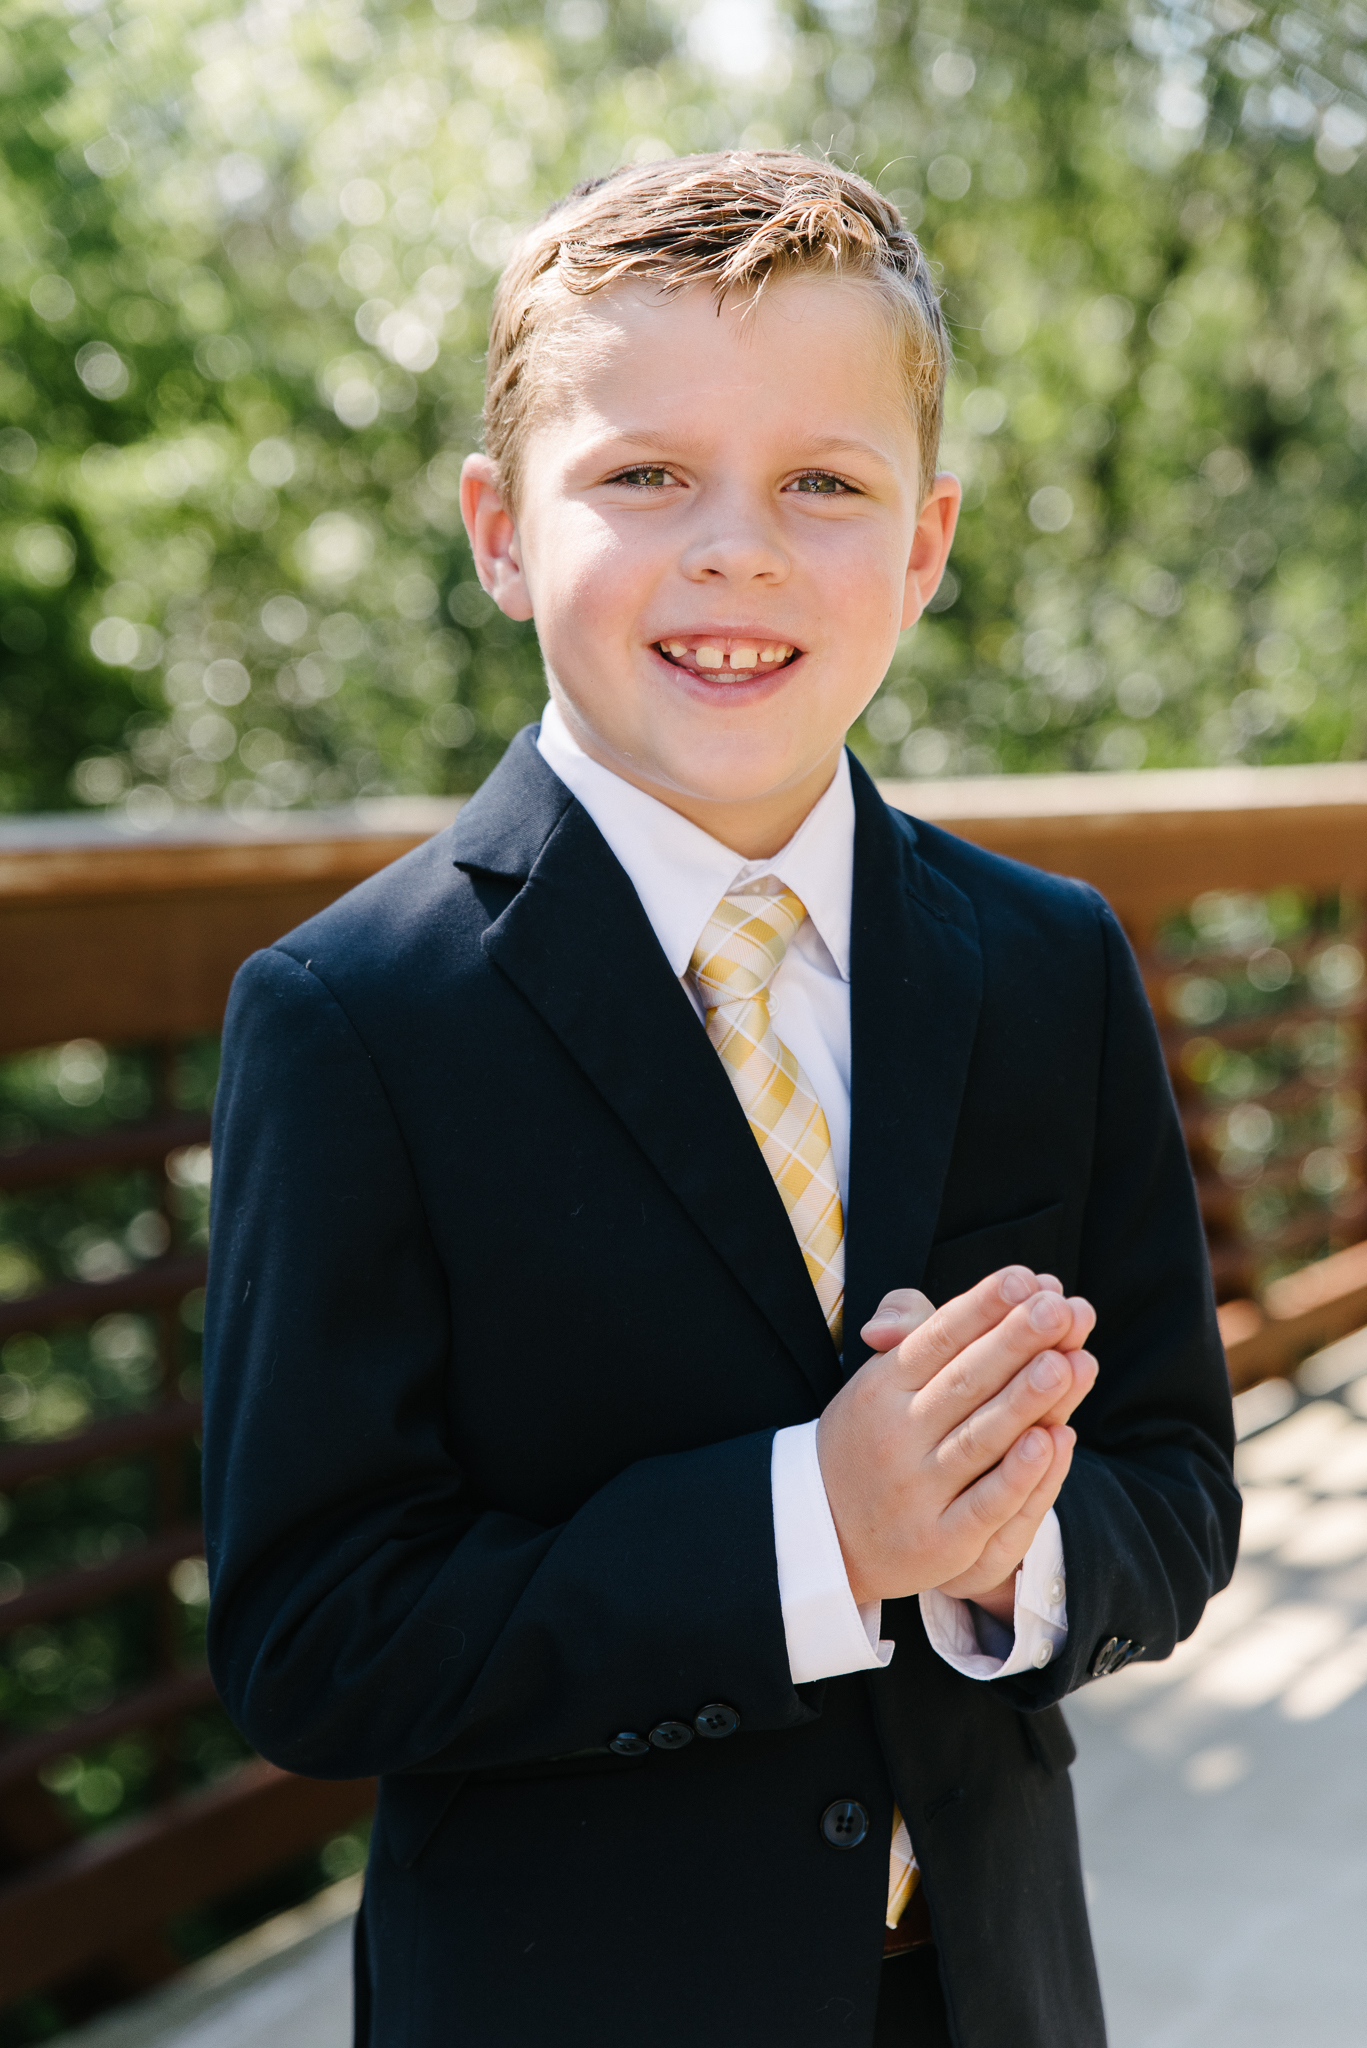 First Communion Catholic Photographer_First Communion Austin Texas_Round Rock Photographer_Emily Ingalls Photography_Austin Photographer_Pflugerville Photographer_Georgetown Photographer-7.jpg